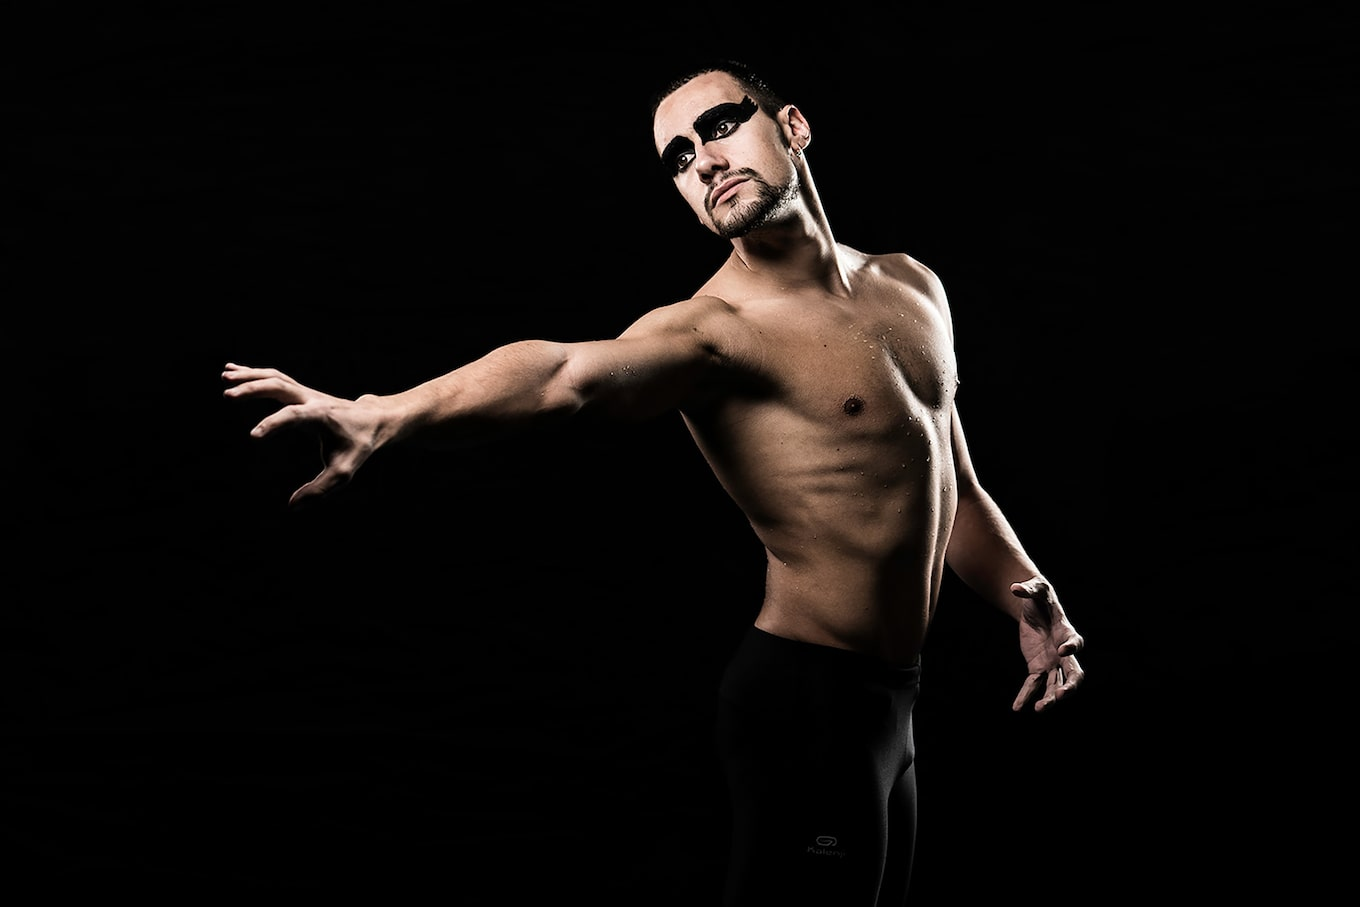 jose-mercado-sony-alpha-9-male-dancer-gestures-to-an-unknown-partner